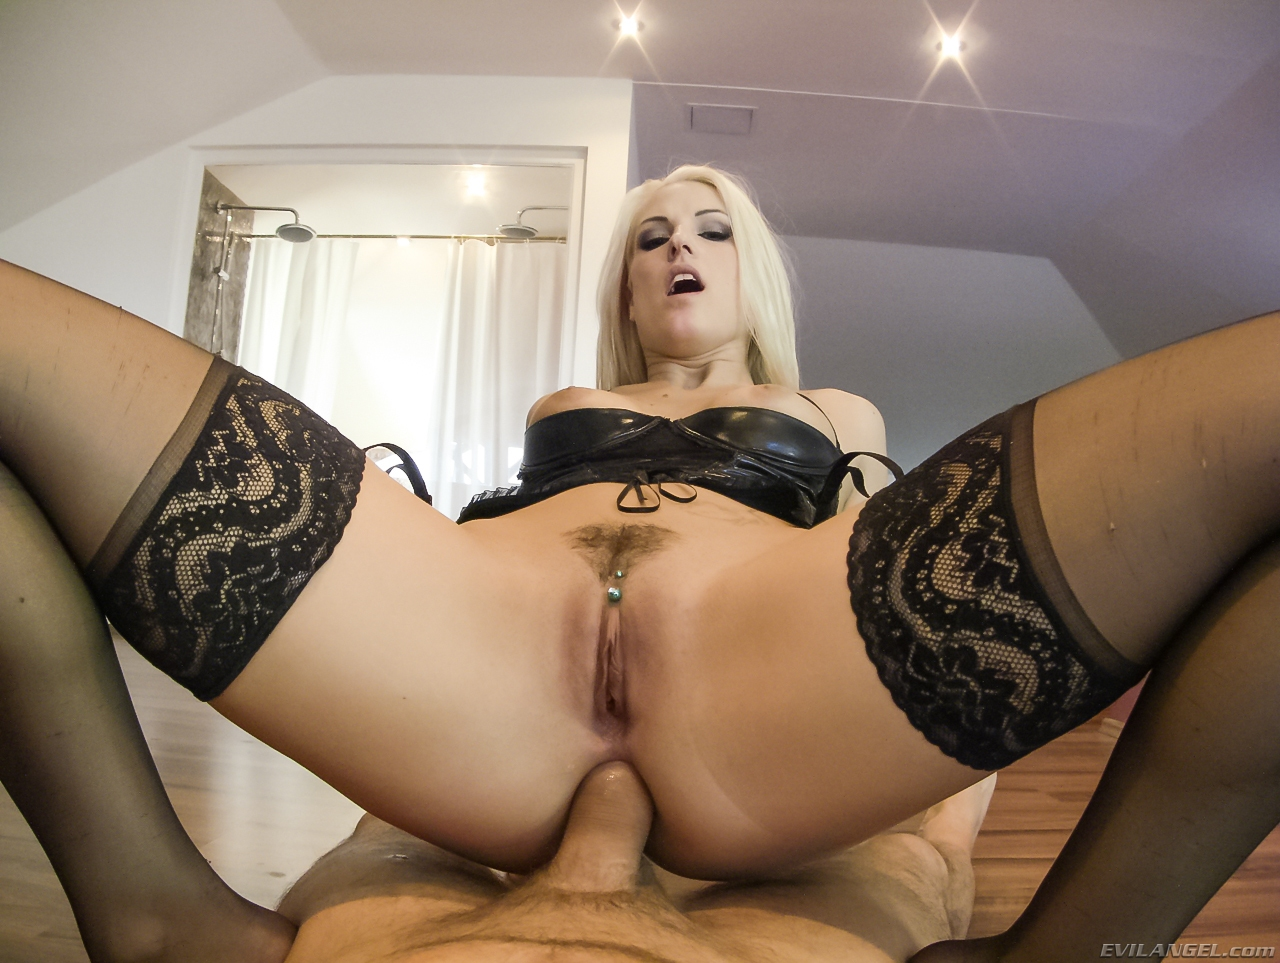 Pretty anal girls pov evil angel